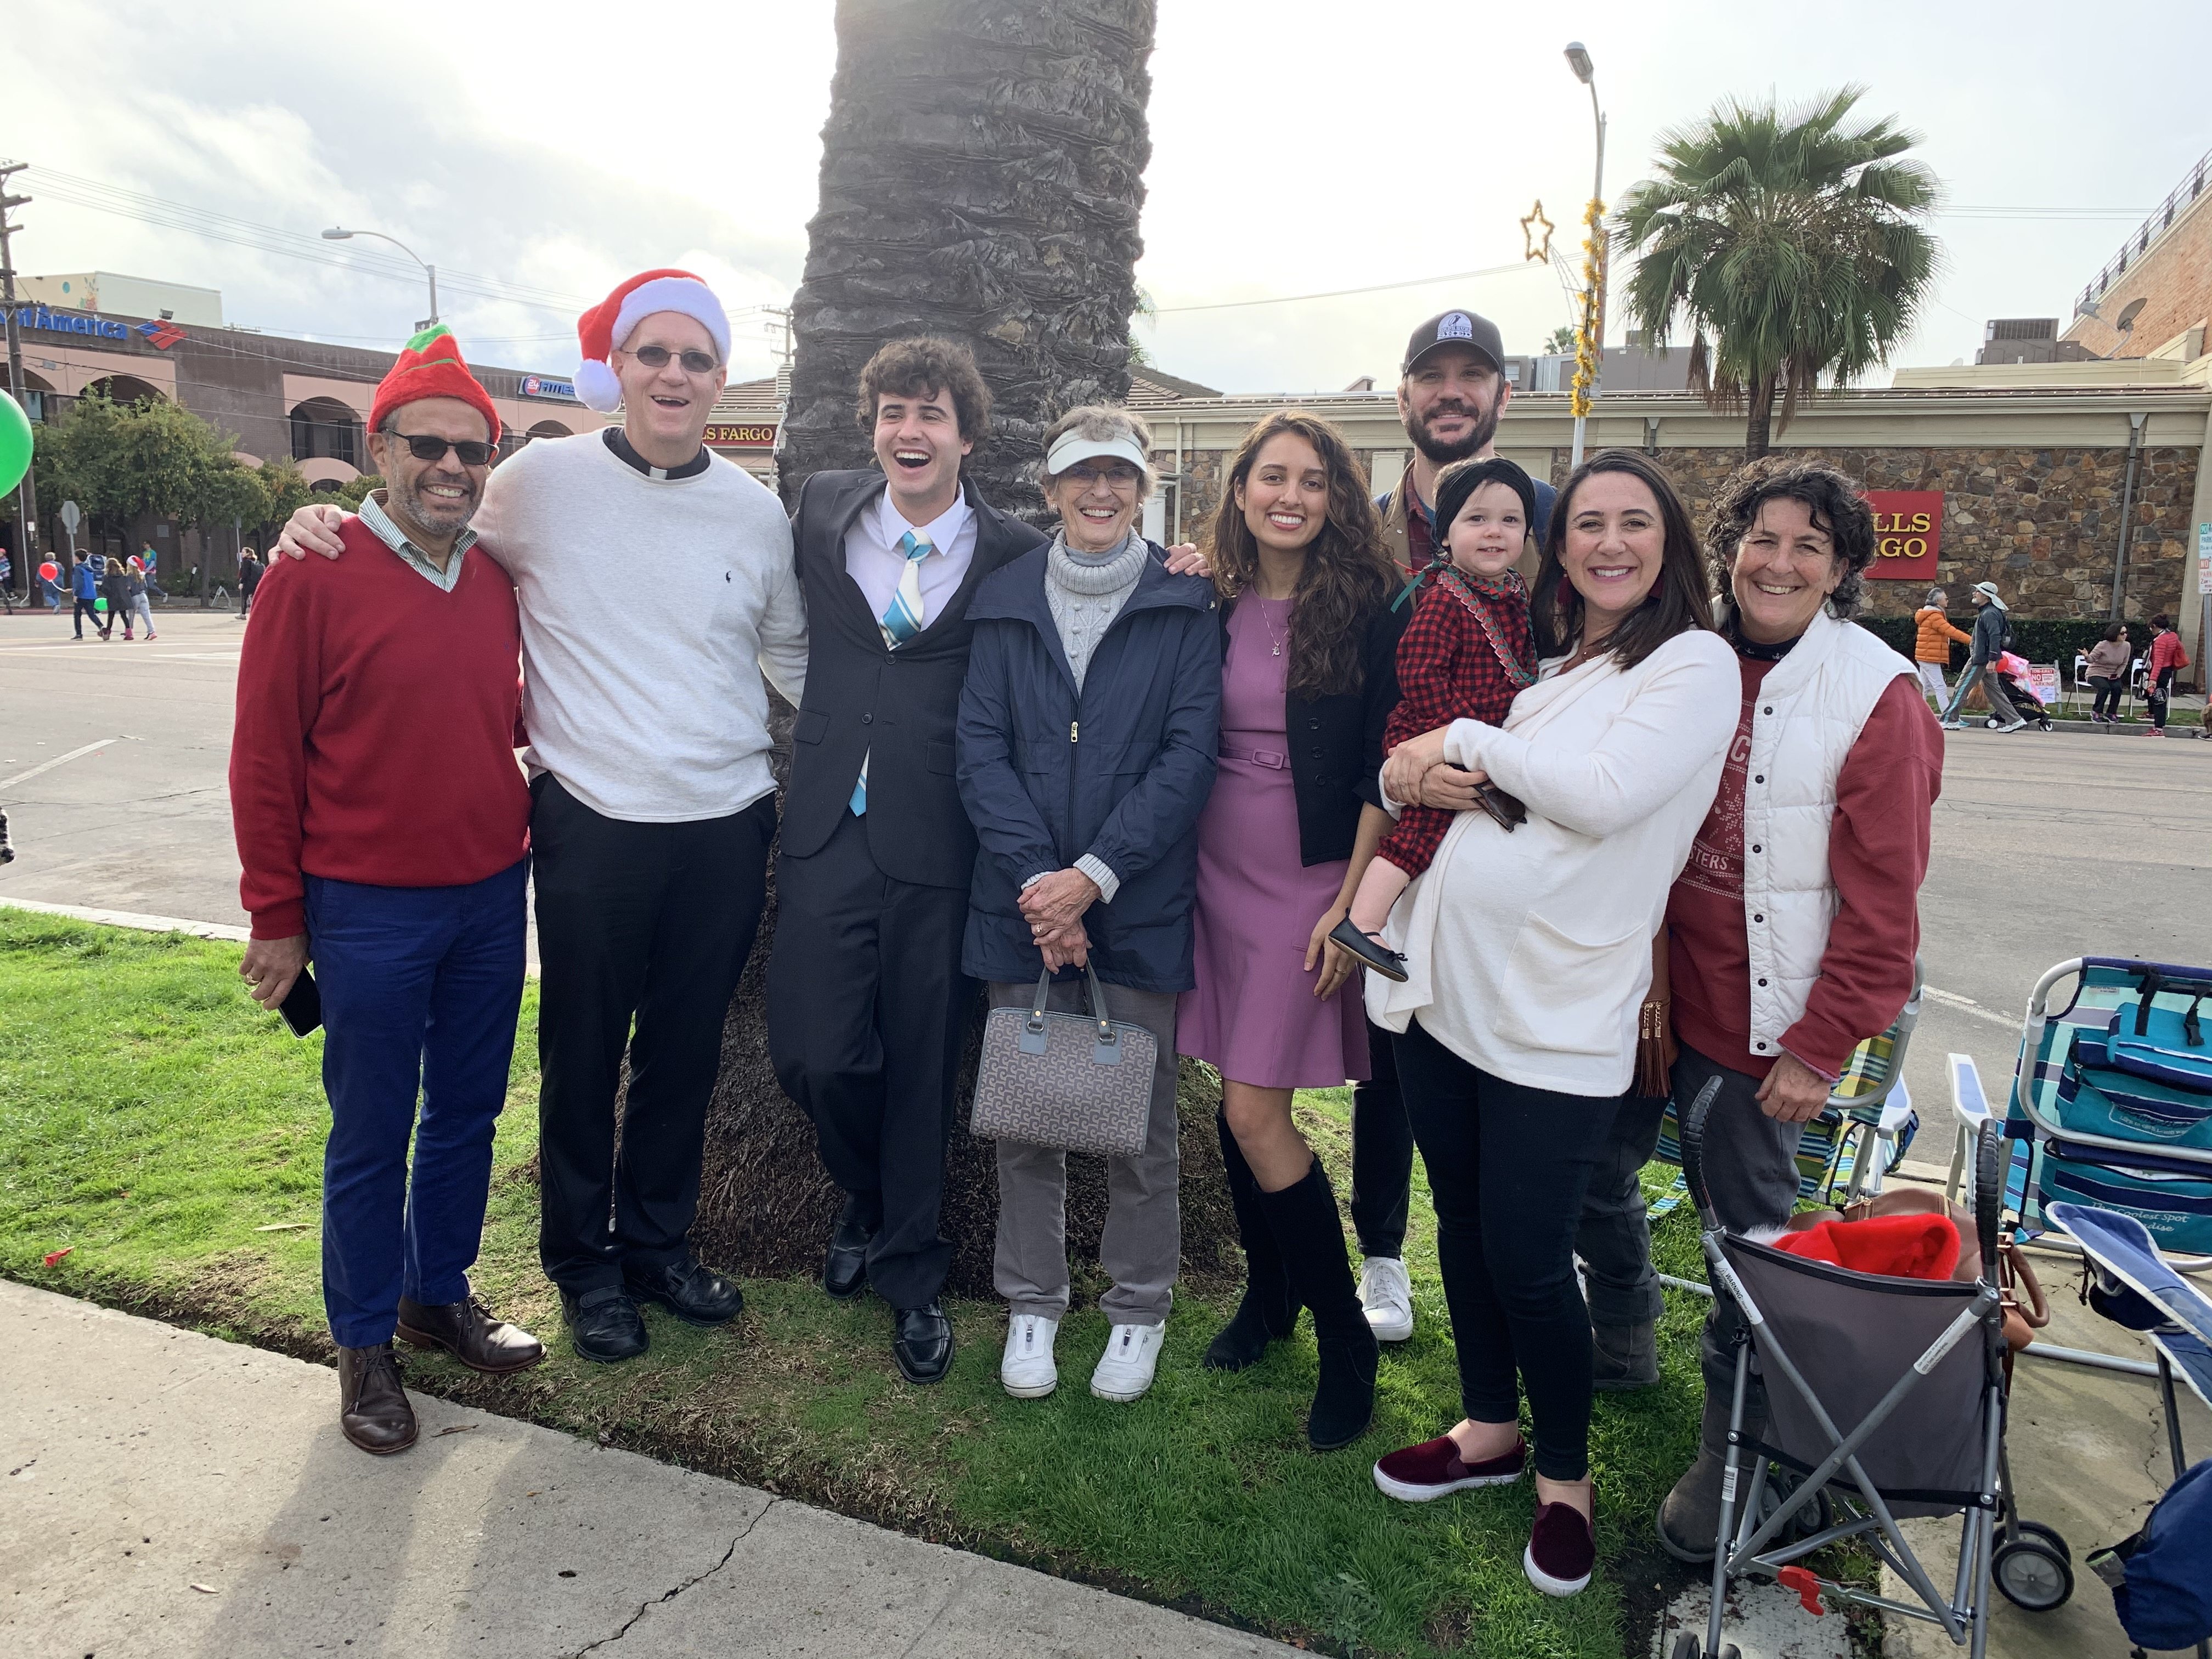 Christmas Parade in La Jolla